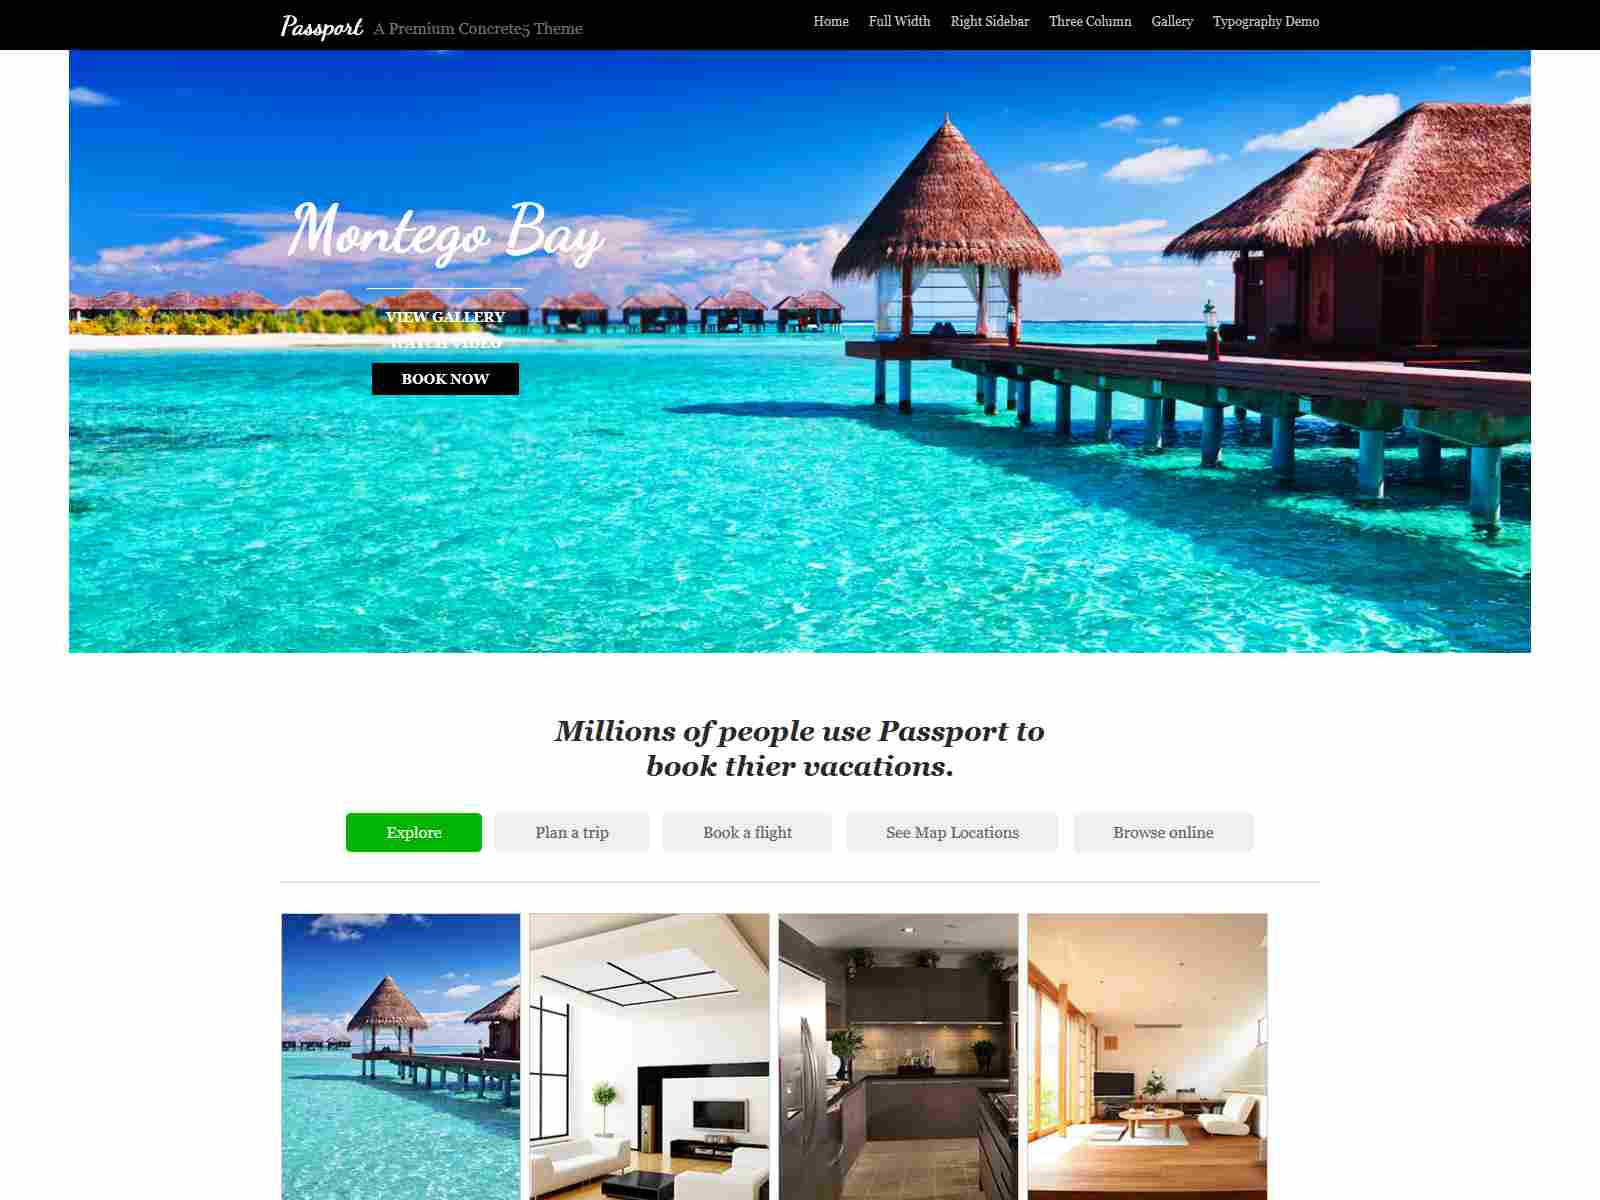 Best Premium Travel Concrete5 Themes